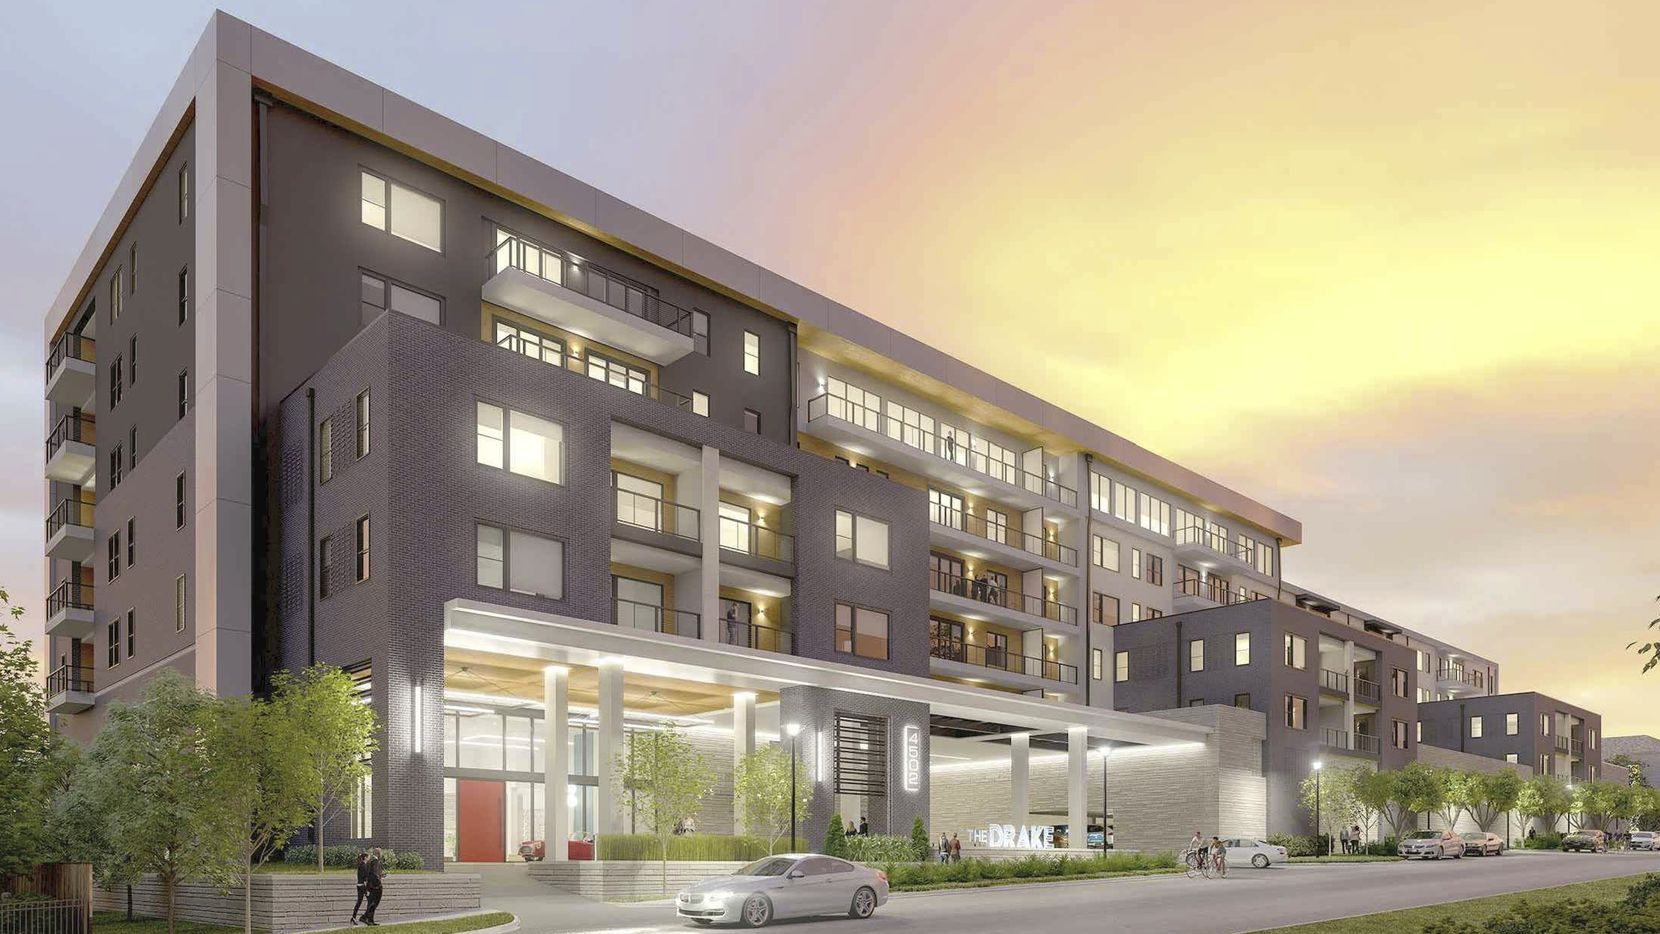 The Drake will have 85 residential units south of White Rock Lake.